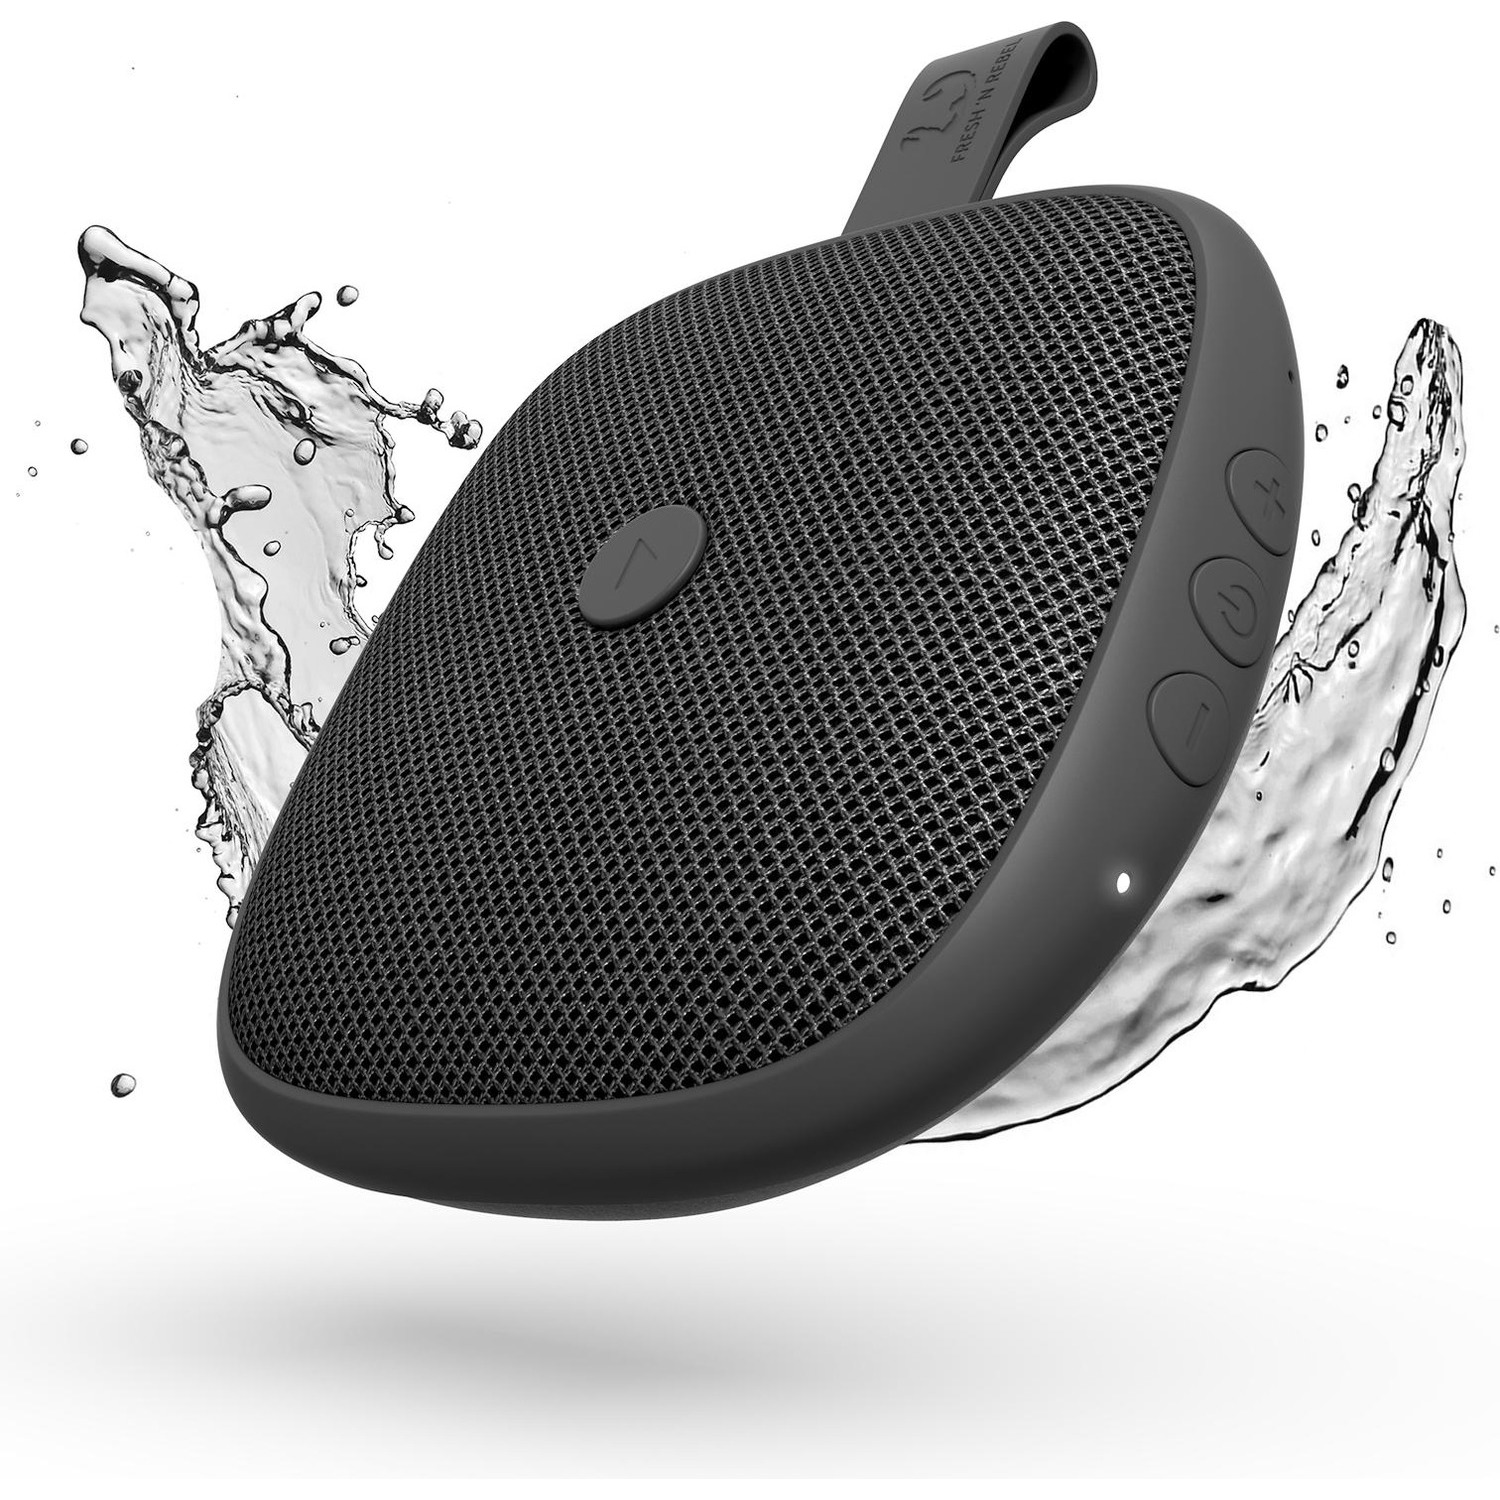 Immagine per Diffusore Fresh 'N Rebel Rockbox Bold XS          Bluetooth waterproof speaker nero antracite da DIMOStore